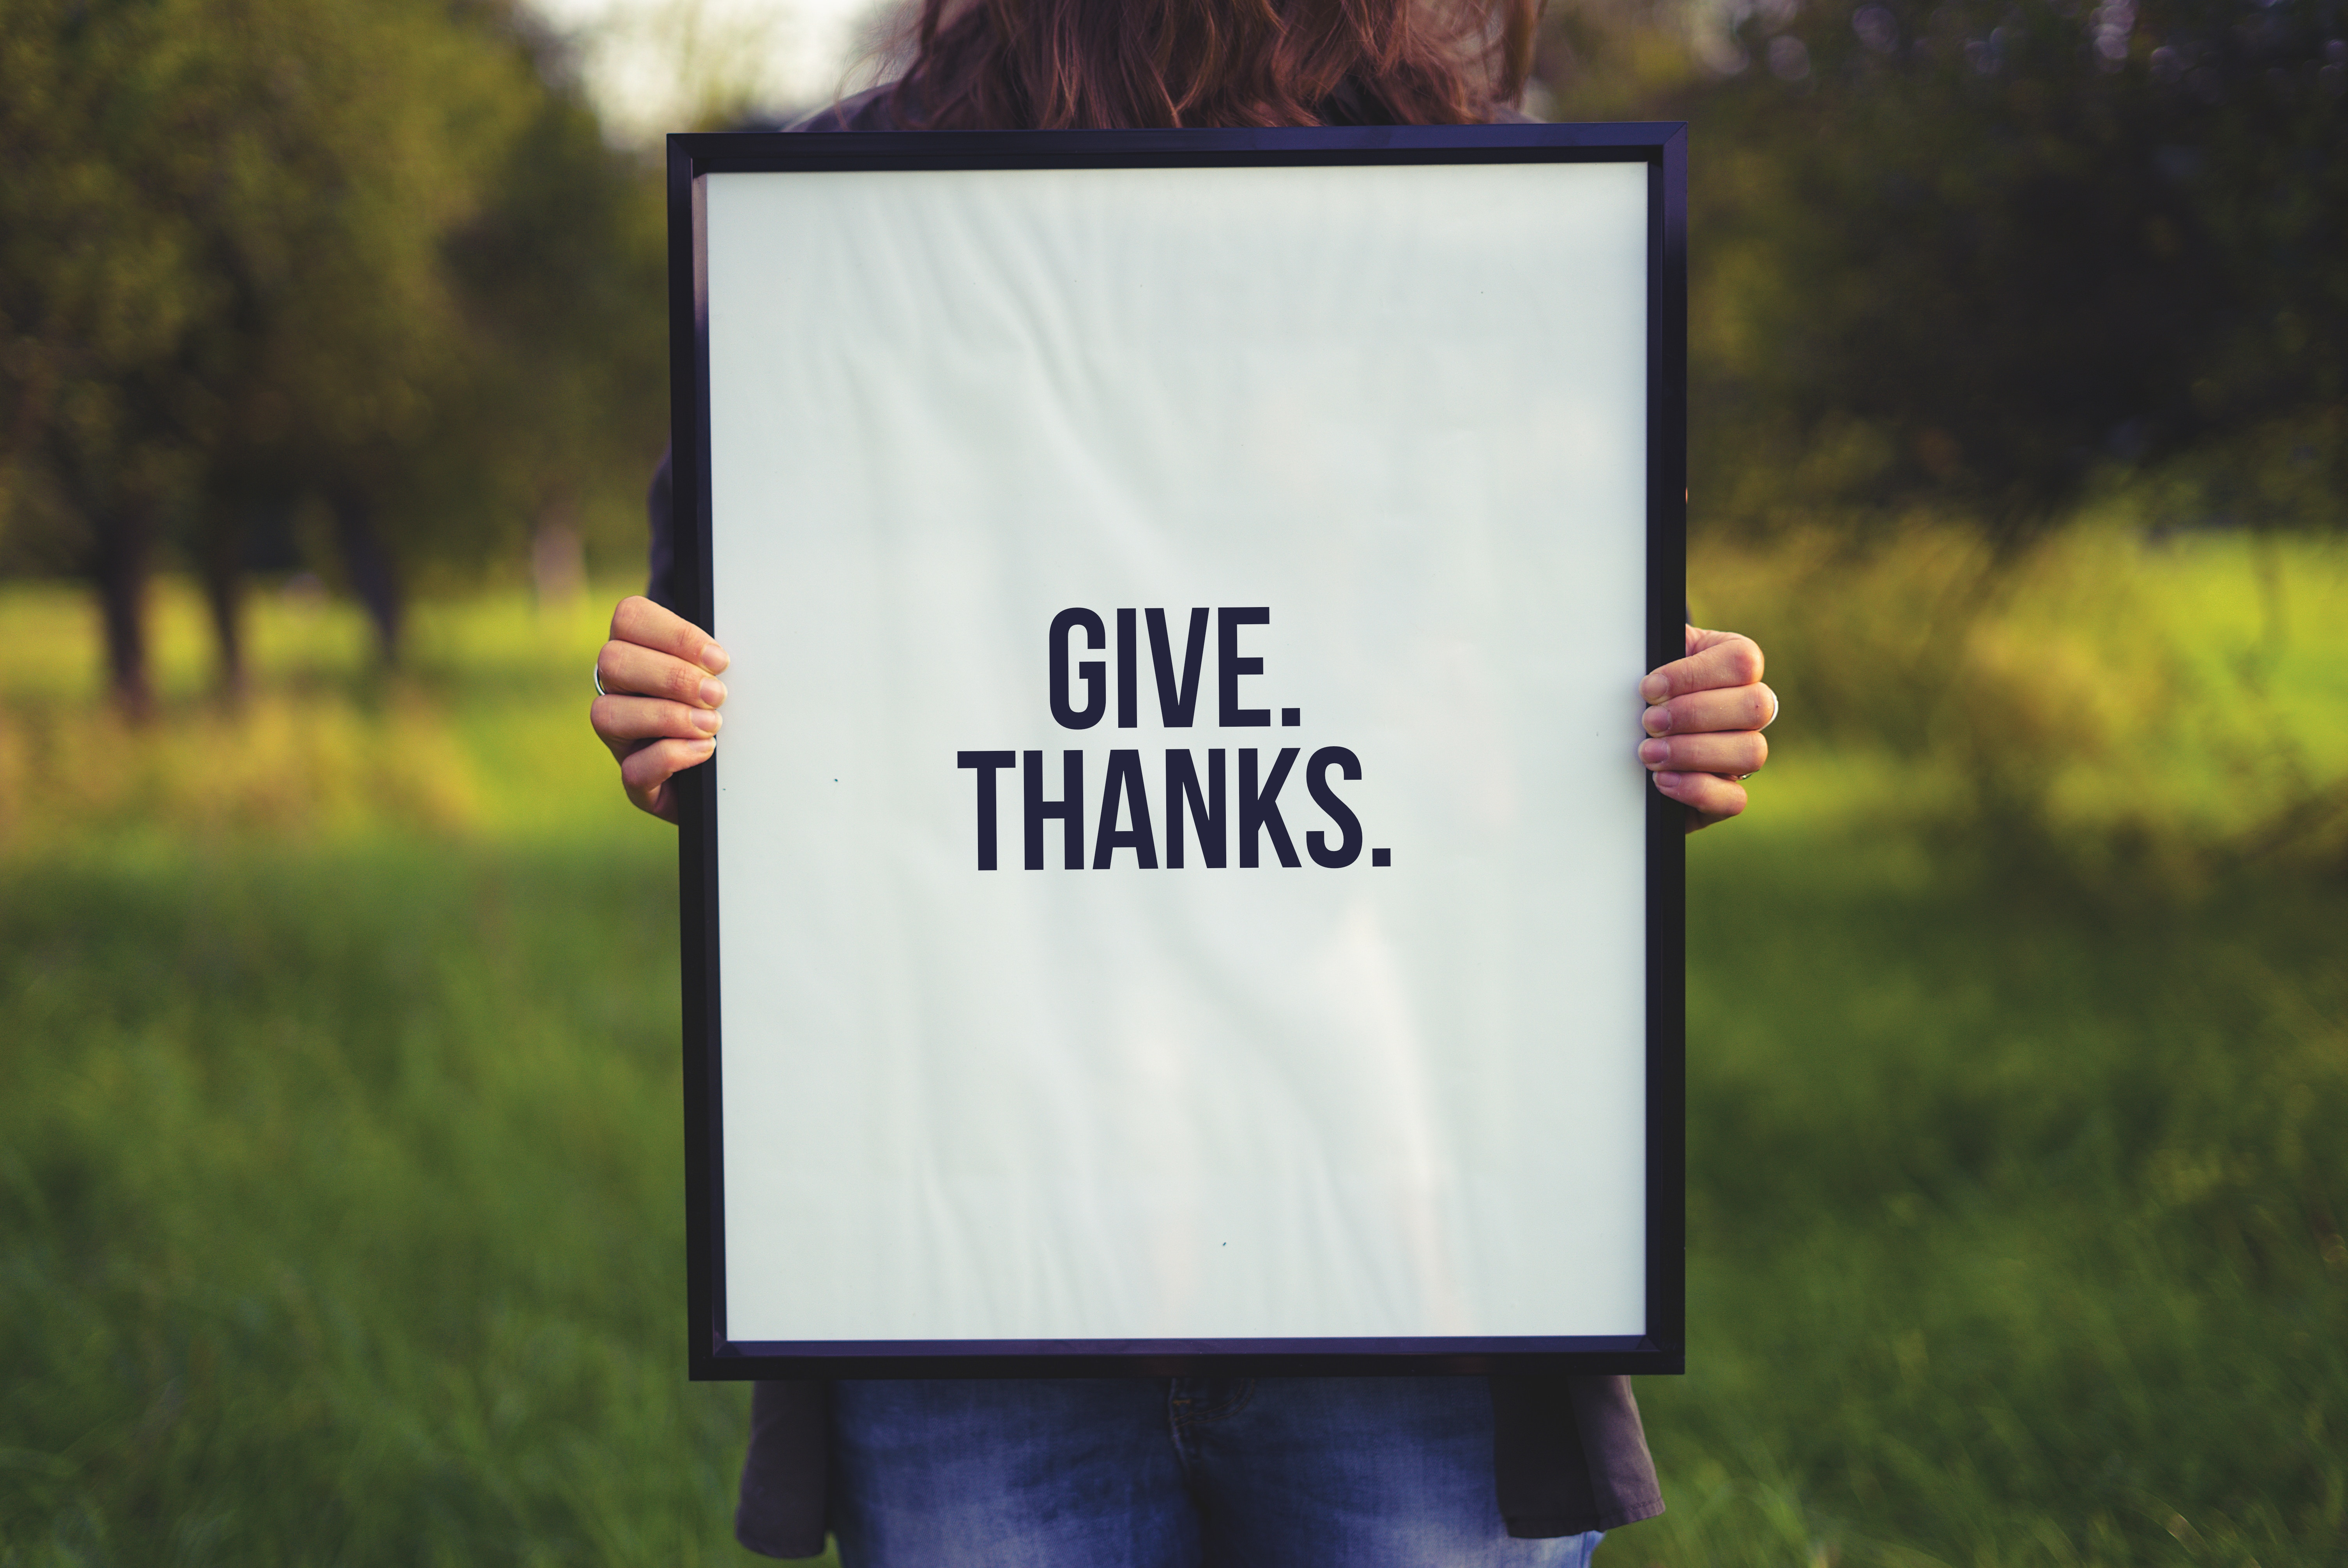 Experience Joy By Giving Thanks | Bible Verses About